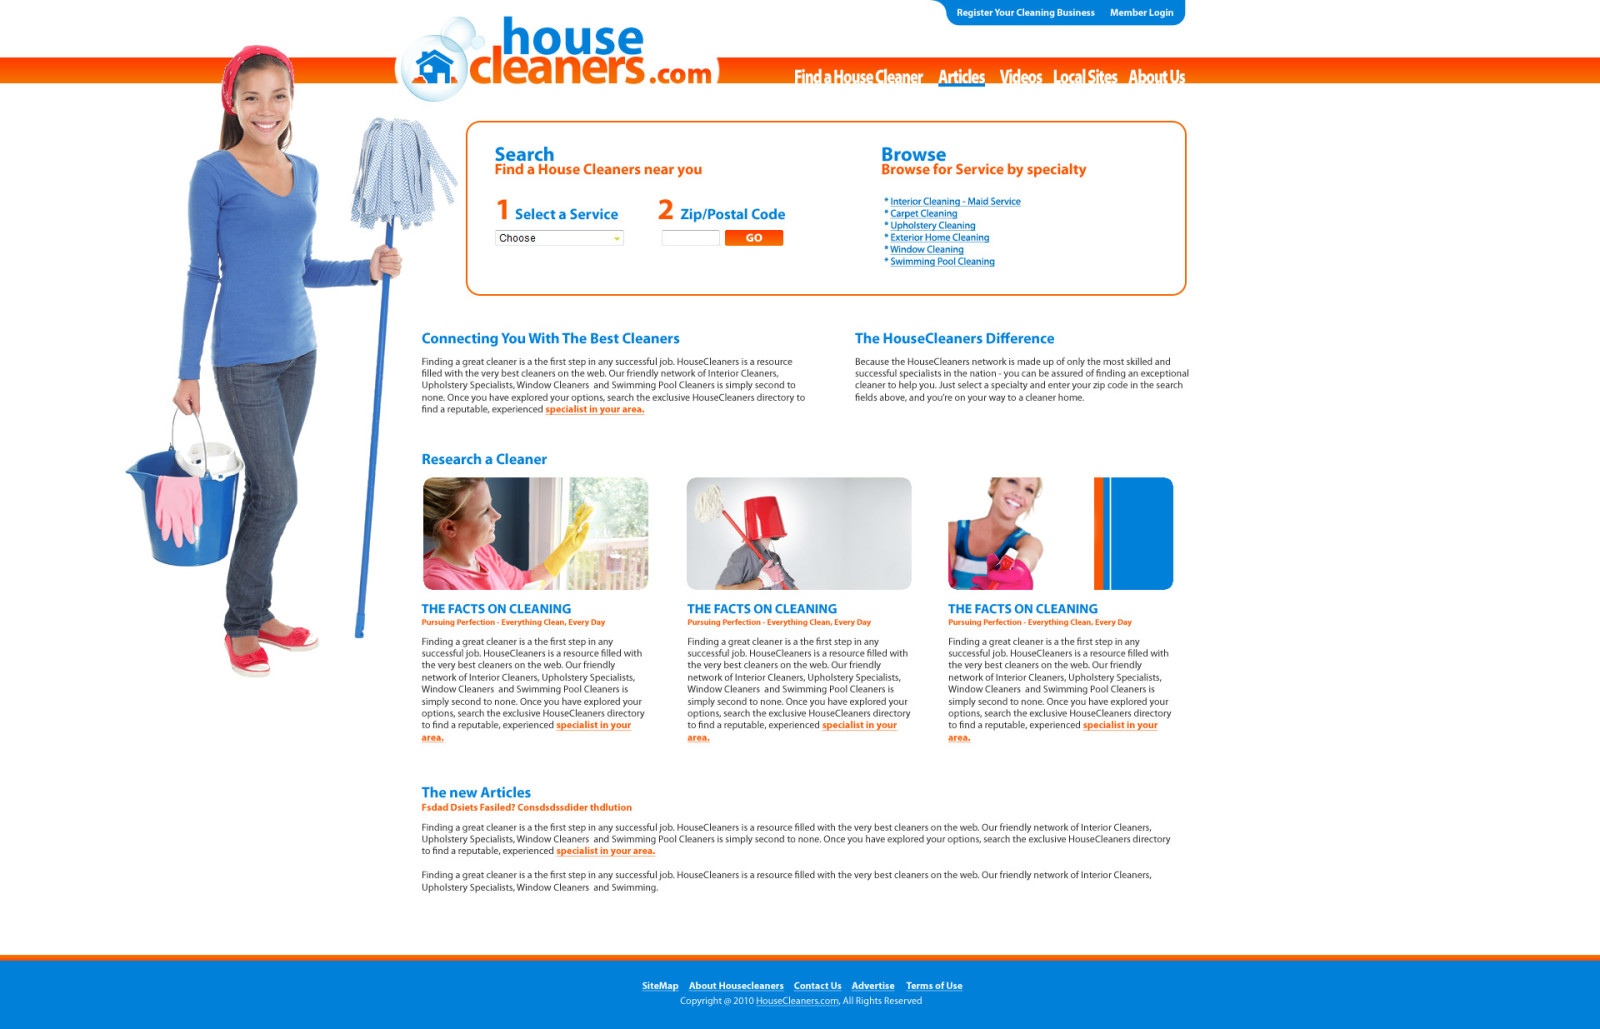 HouseCleaners4a